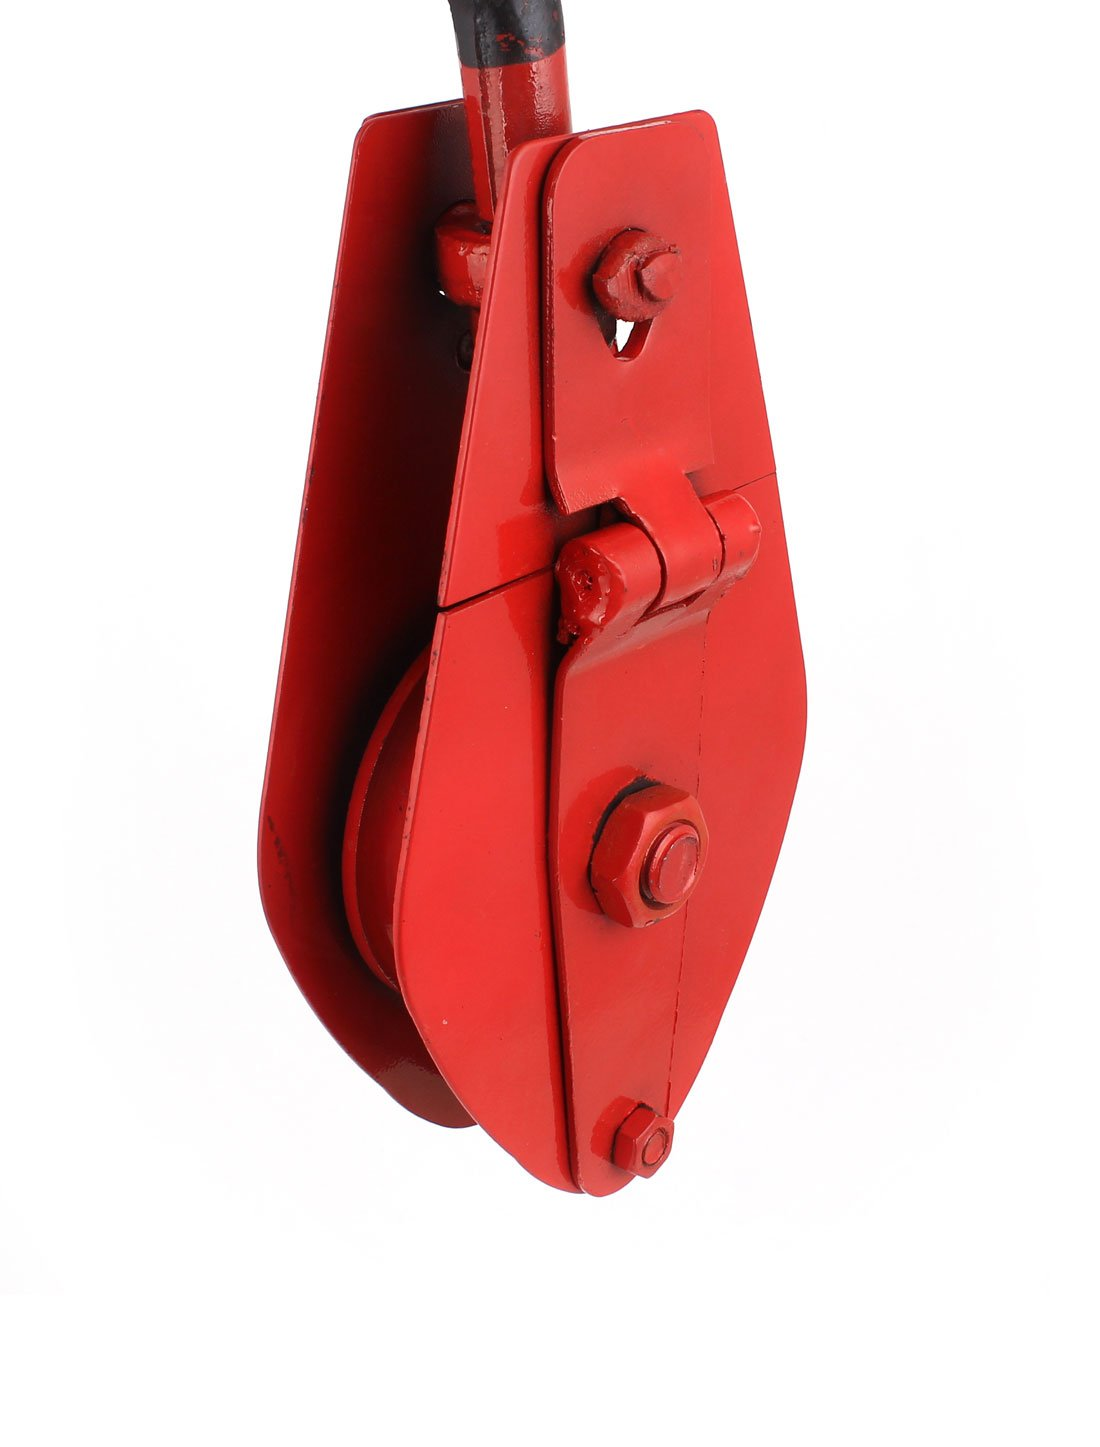 310mm Length 1T Single Ring Lifting 10mm Rope Crane Pulley Block